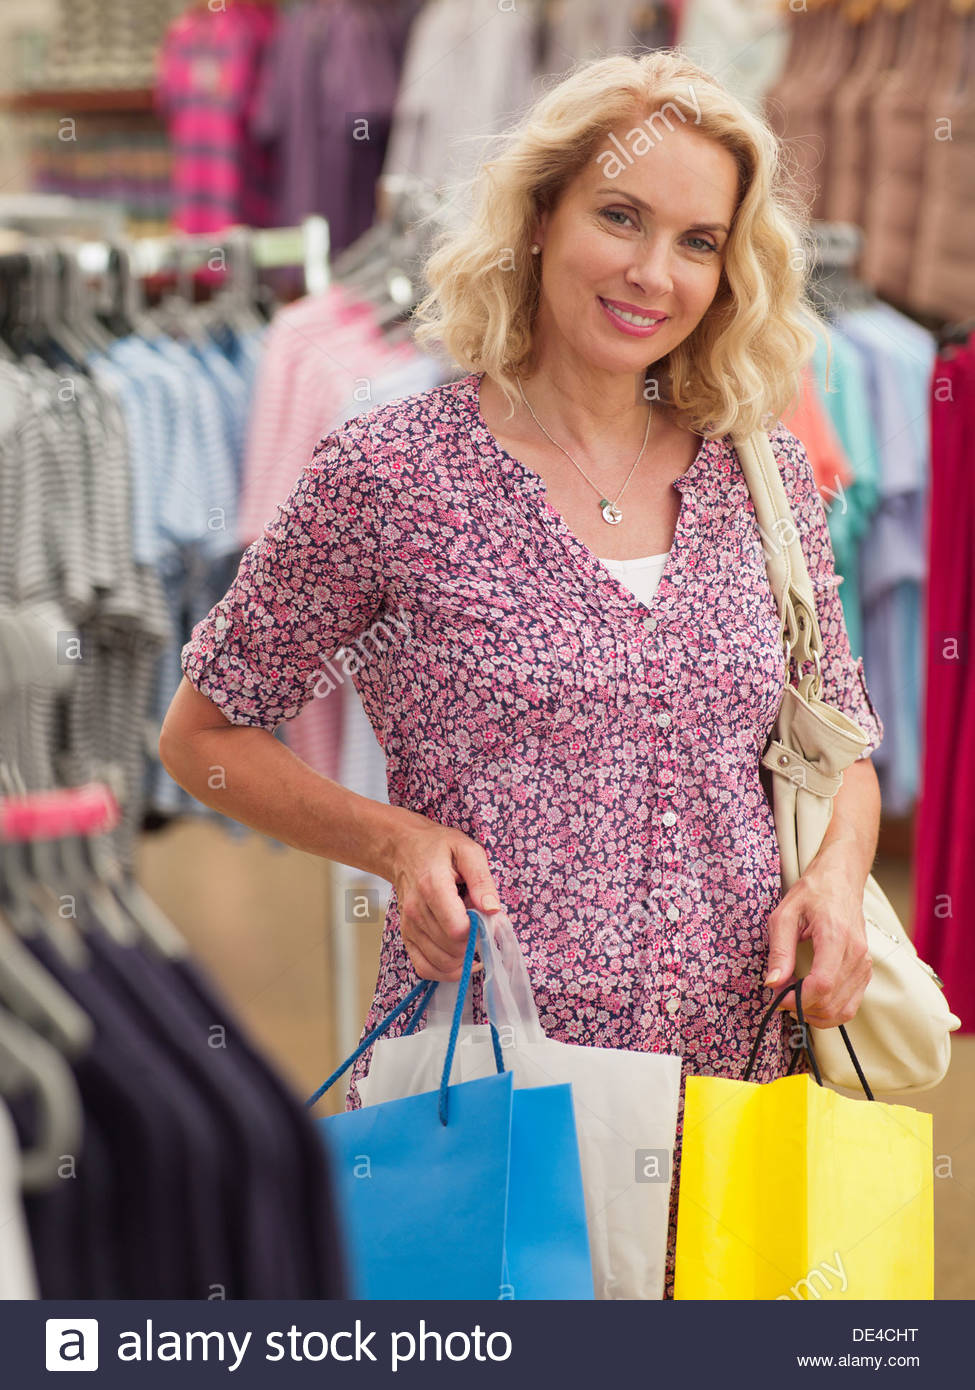 Smiling woman carrying shopping bags in clothing store Photo Stock